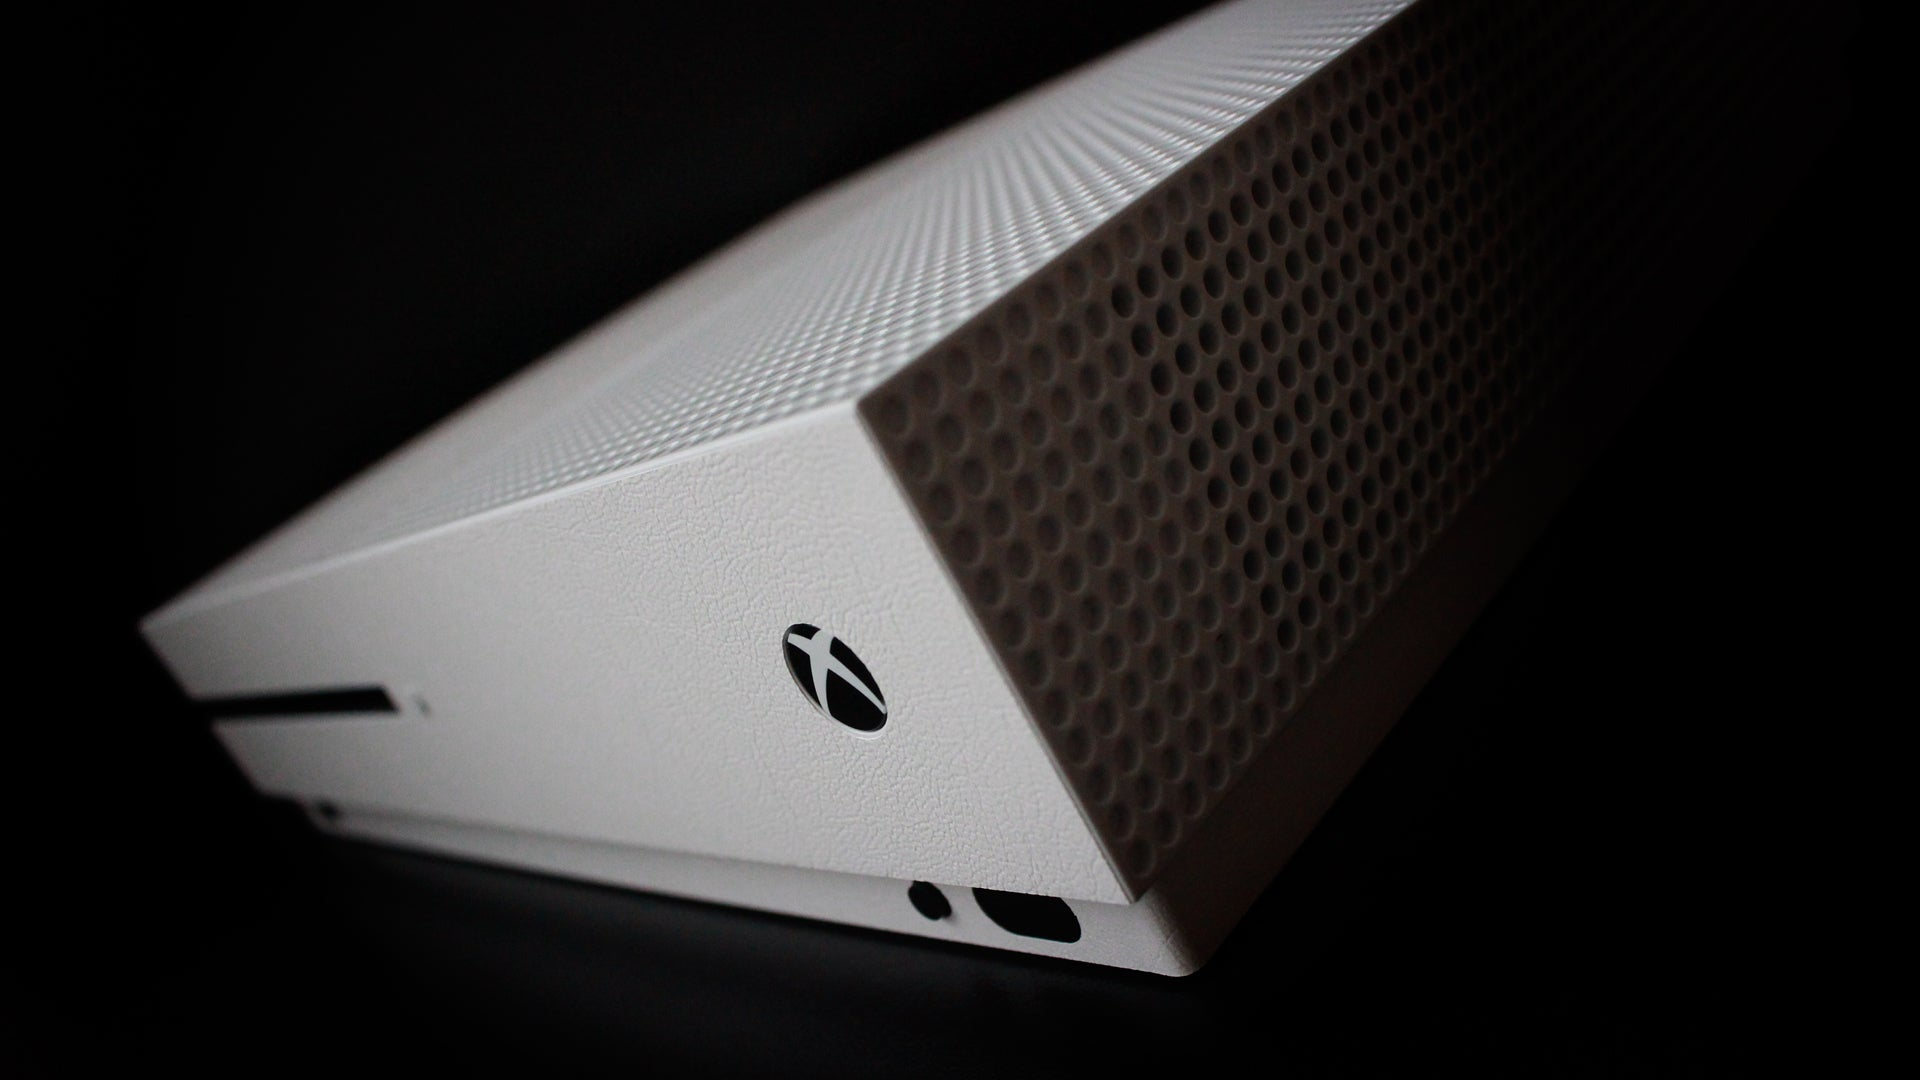 Xbox One S White Leather Skin